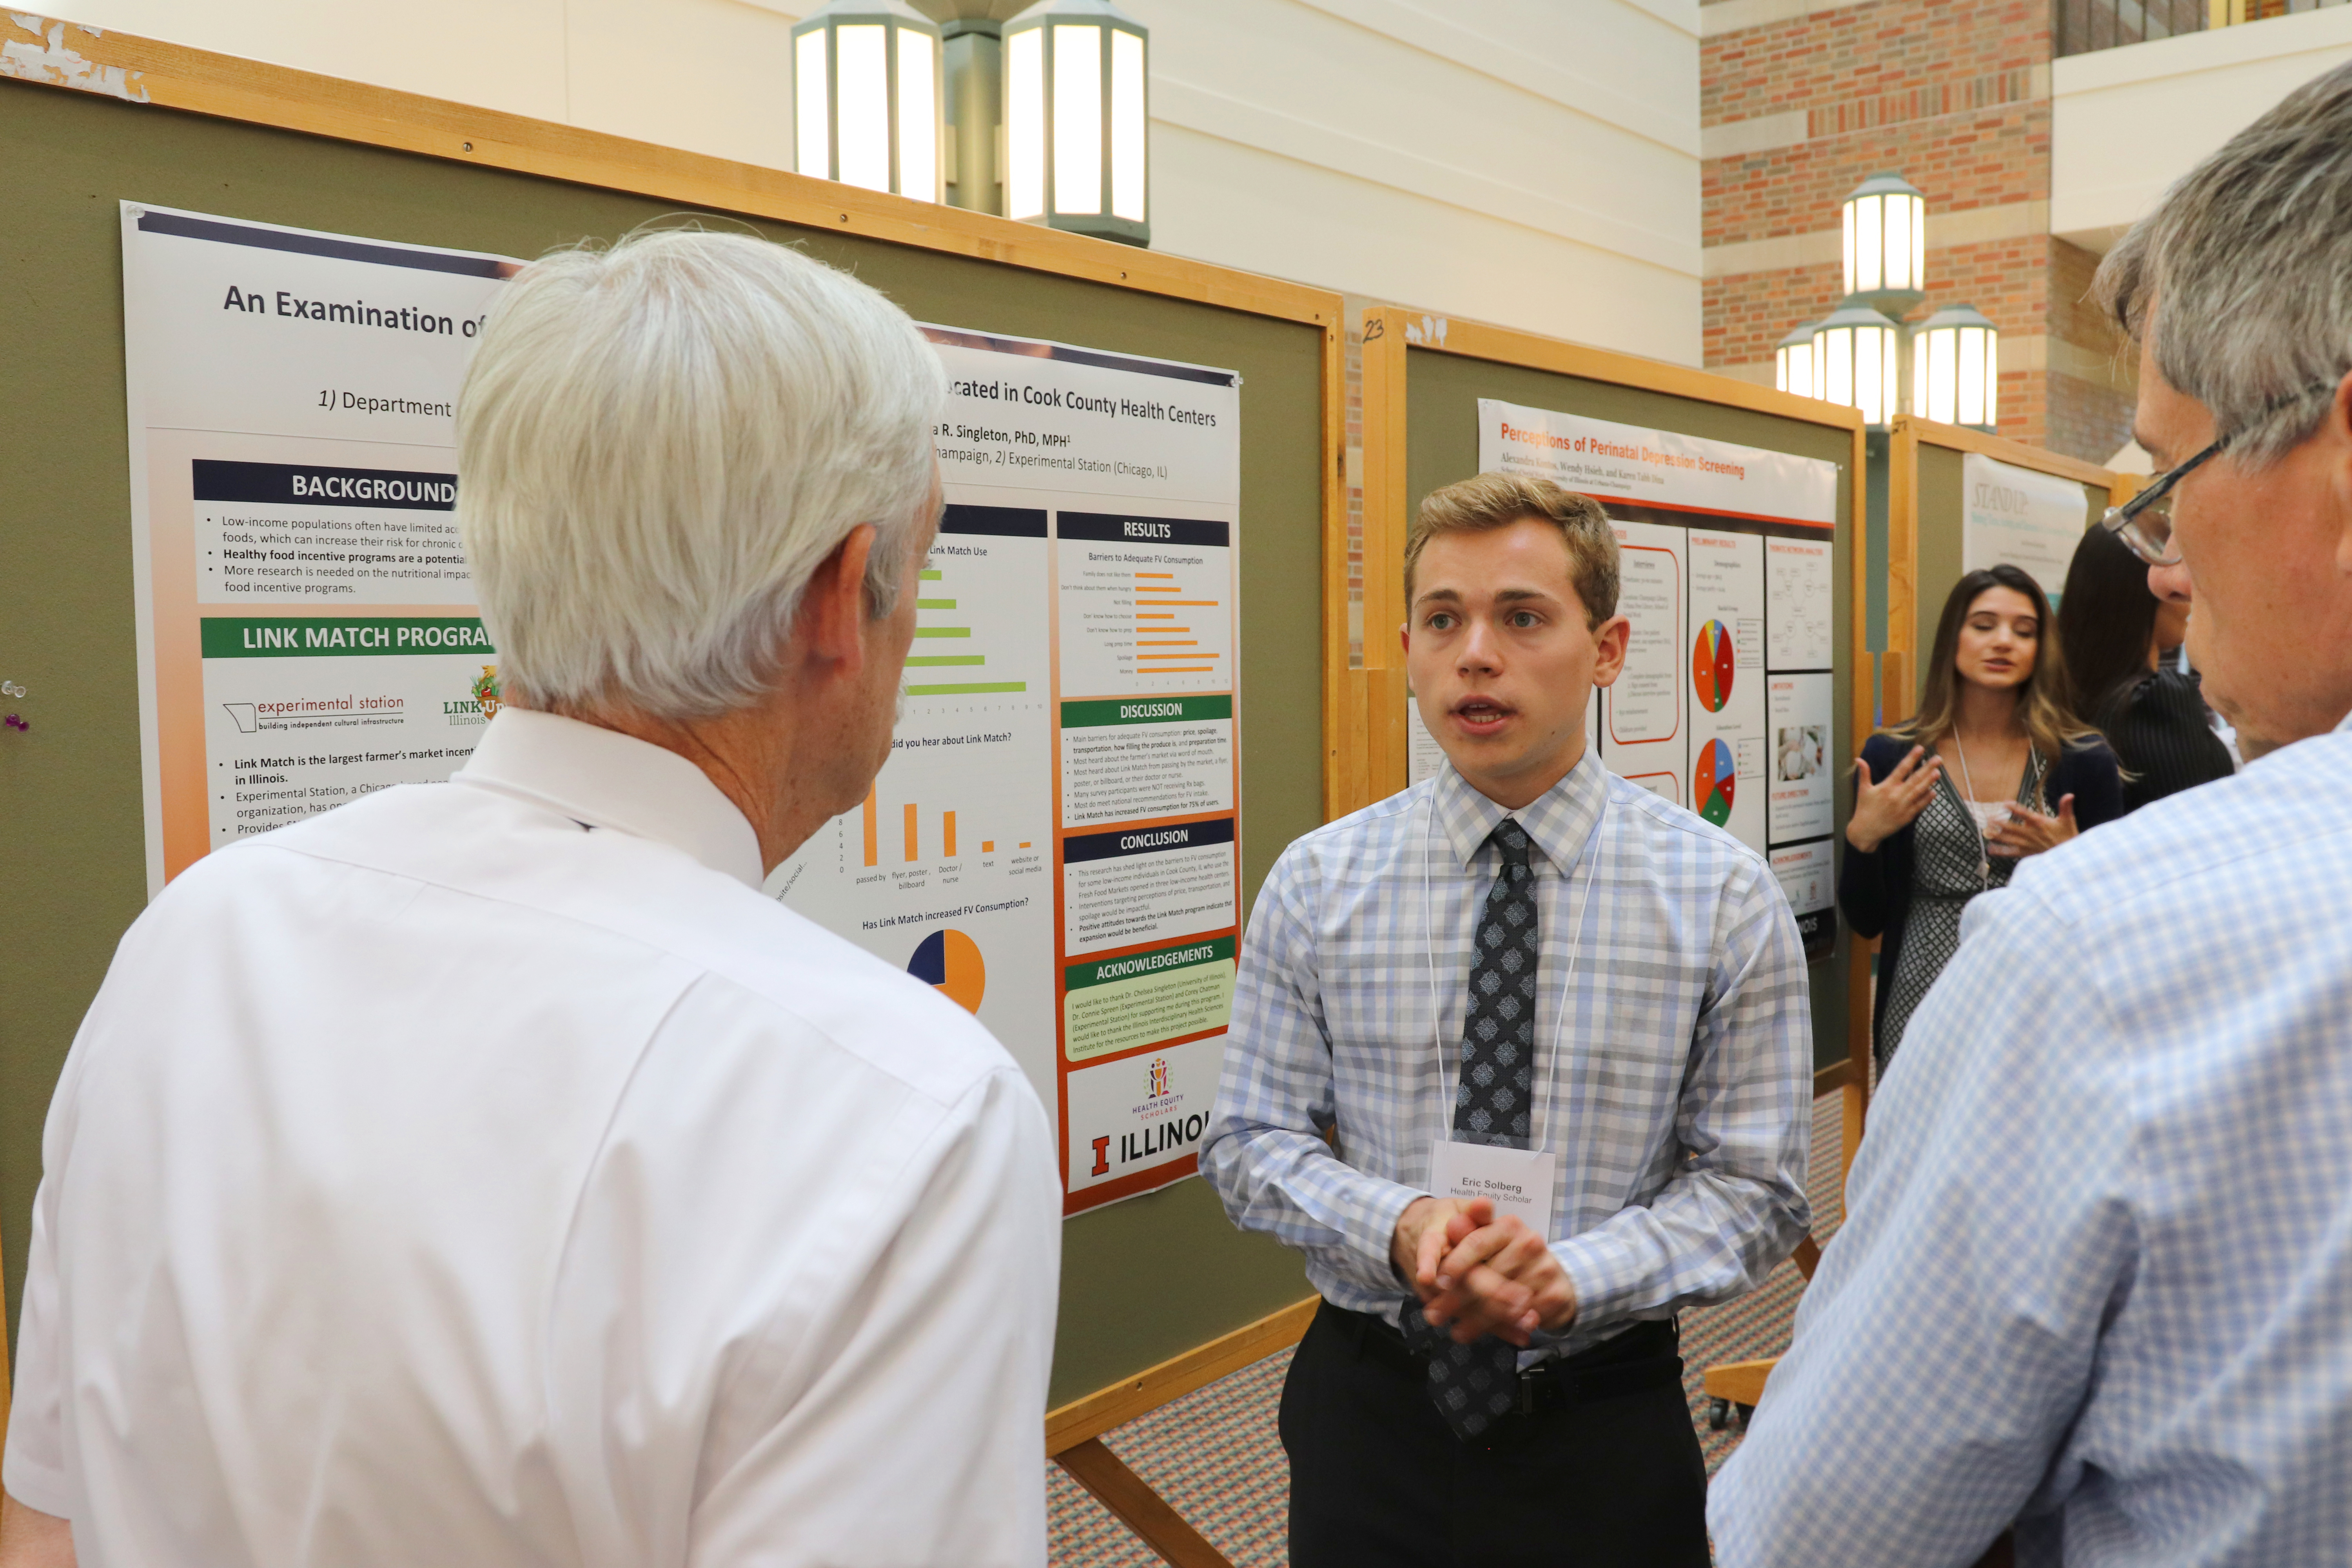 Eric presenting his poster